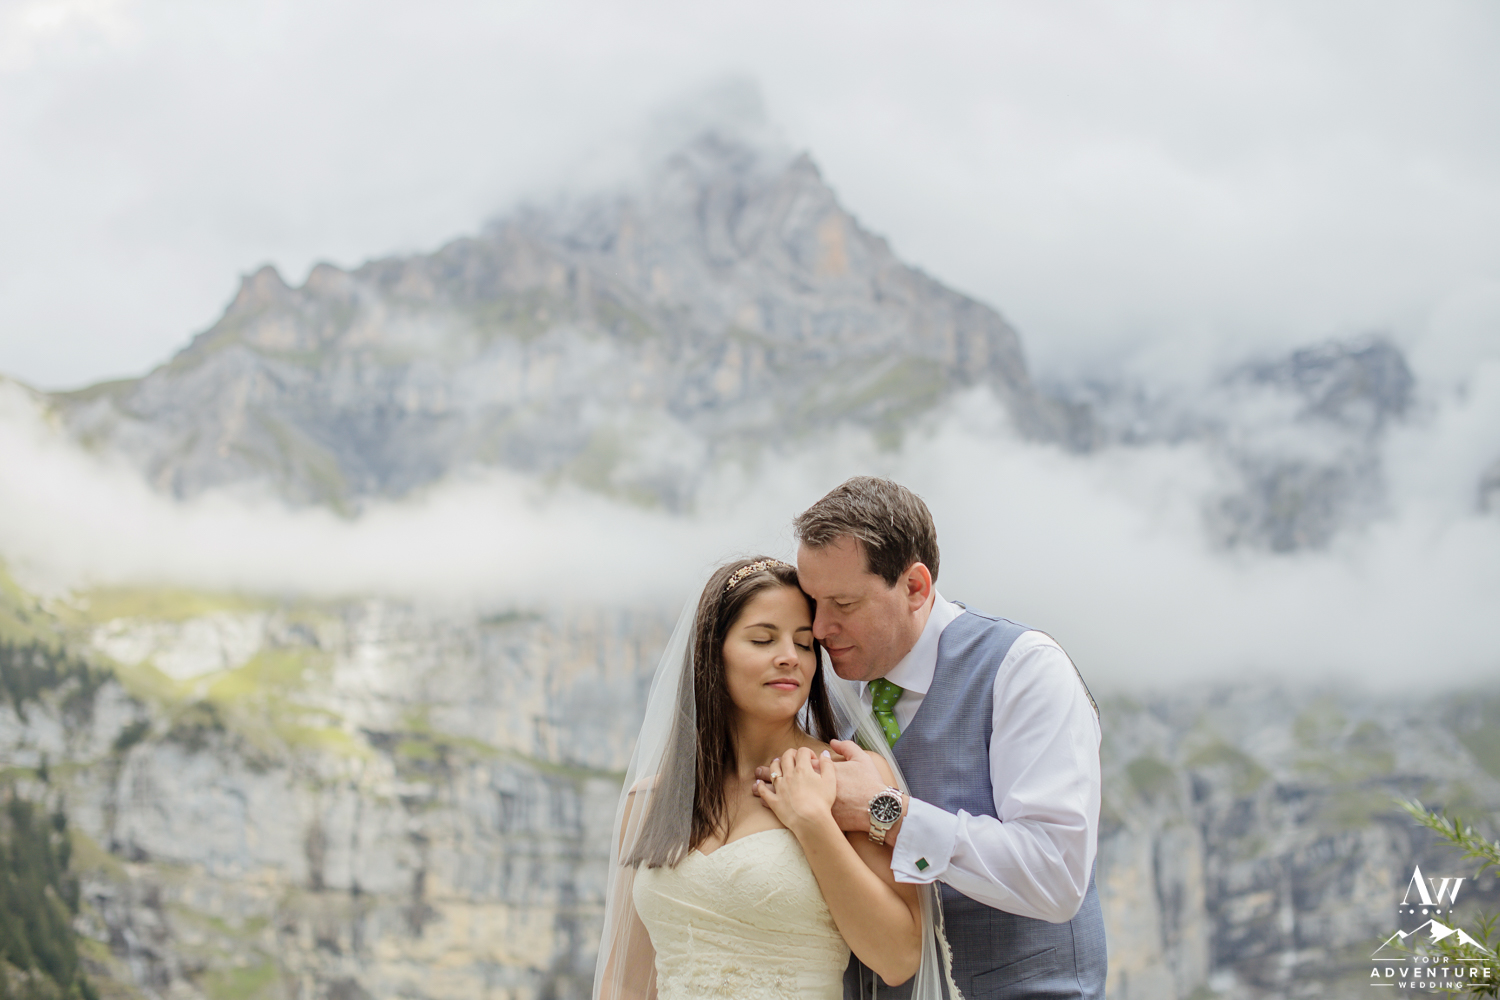 Couple hugging on wedding adventure in Switzerland